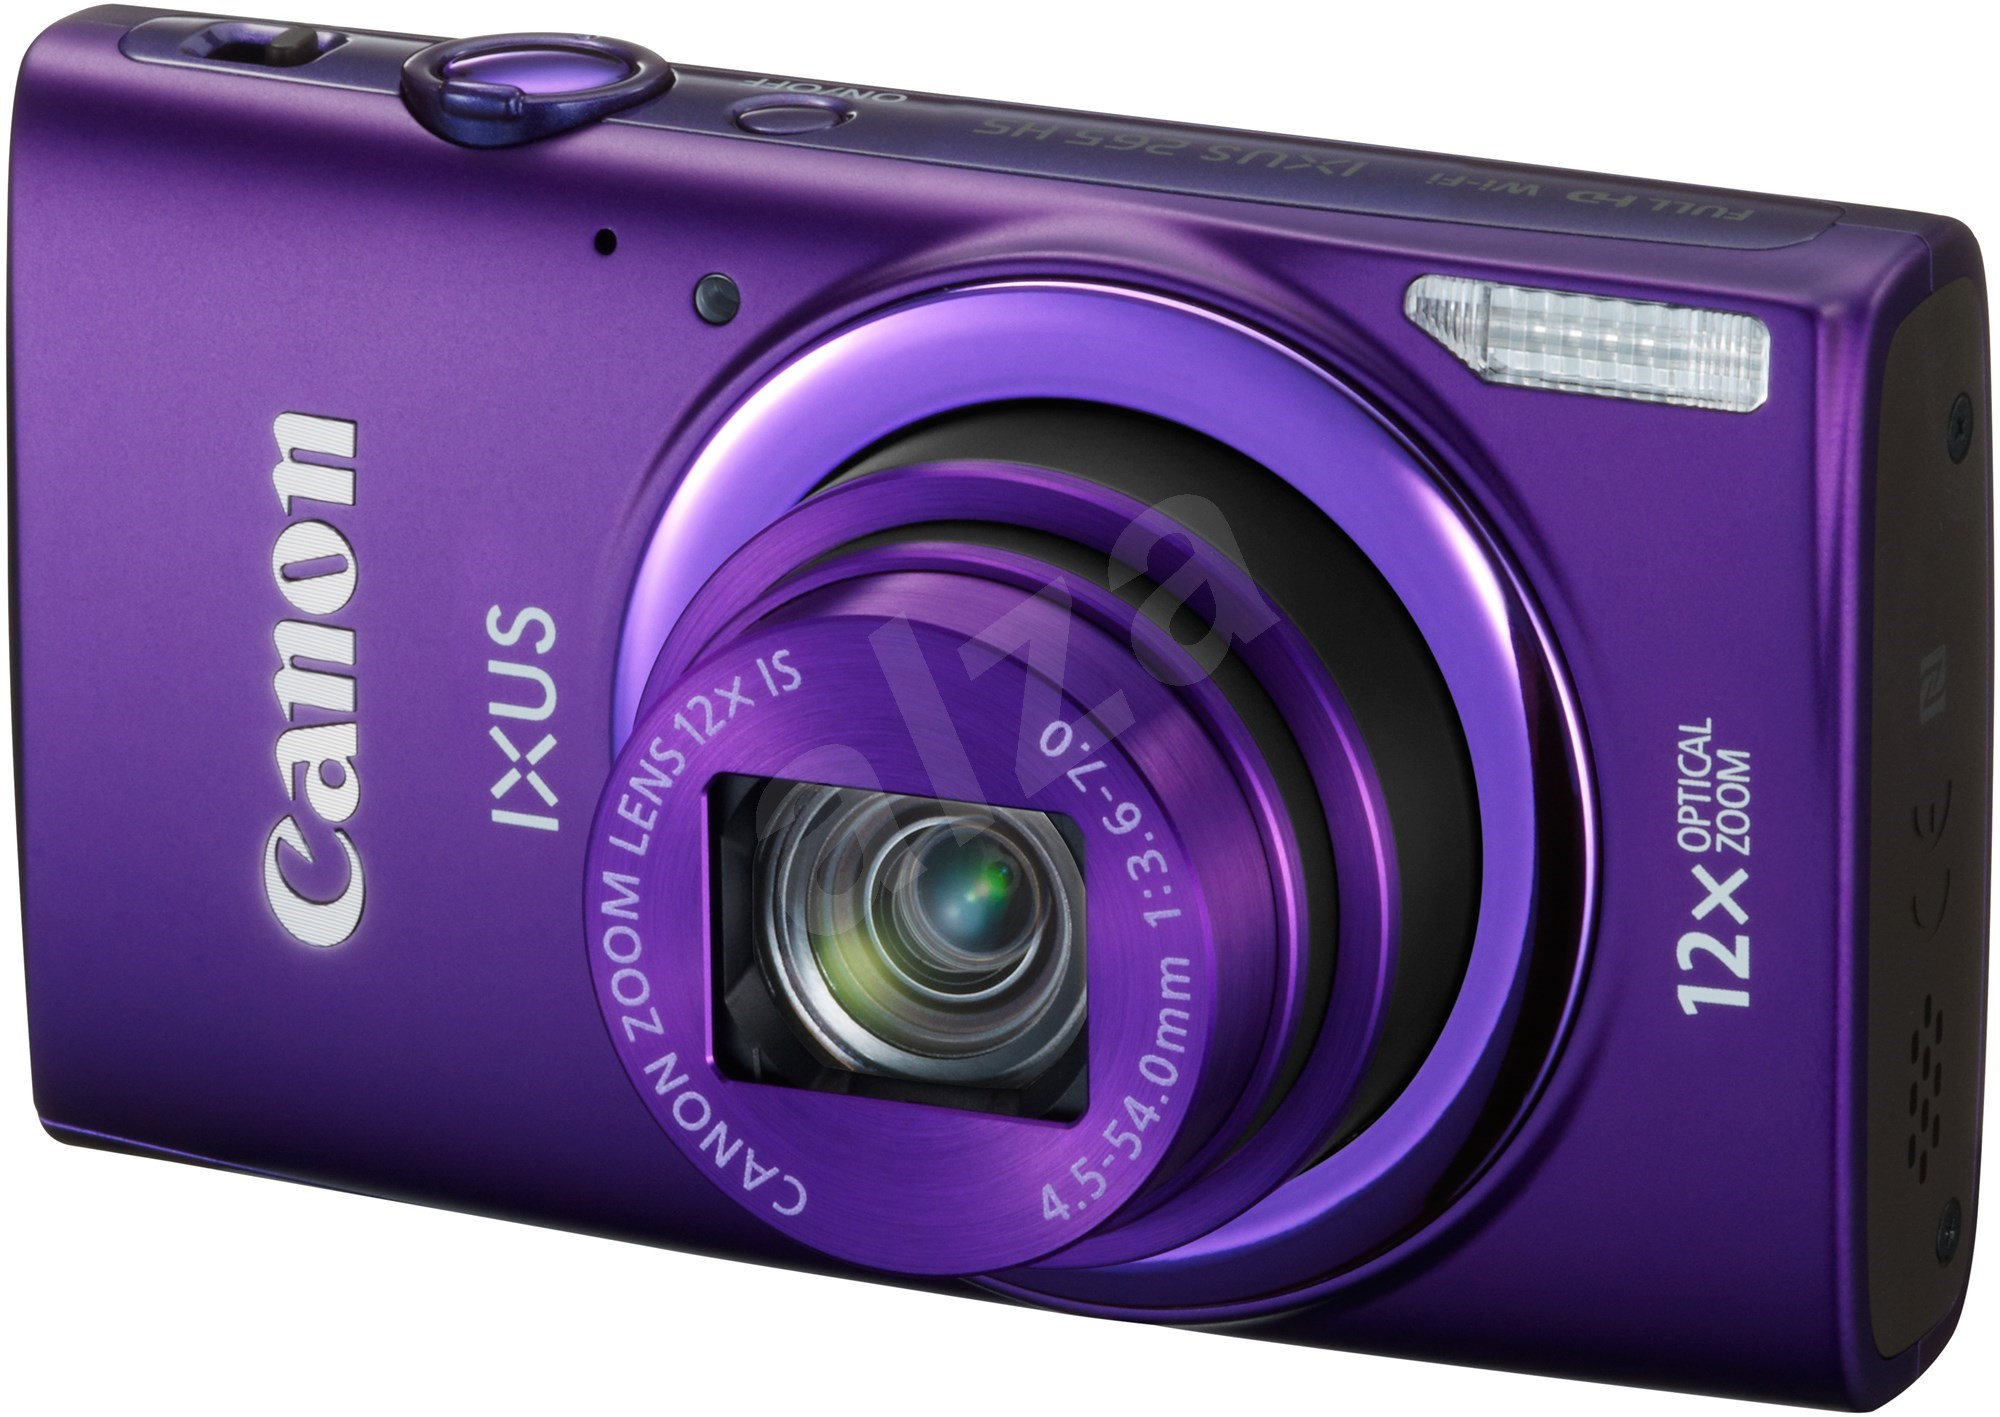 canon ixus 265 hs purple. Black Bedroom Furniture Sets. Home Design Ideas